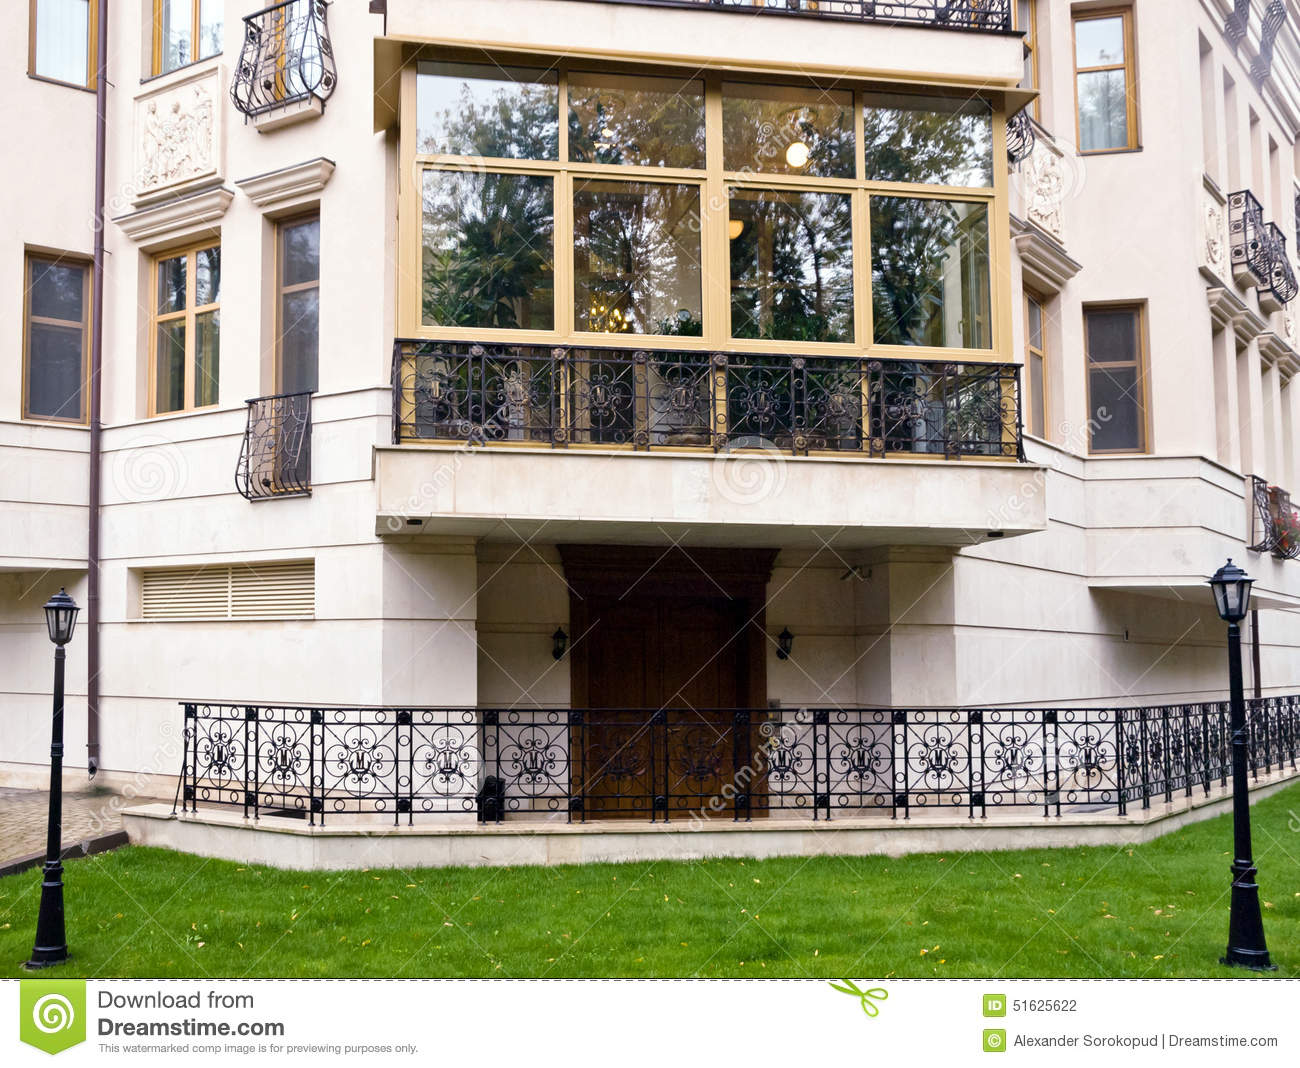 Where to order balcony glazing in Moscow 27